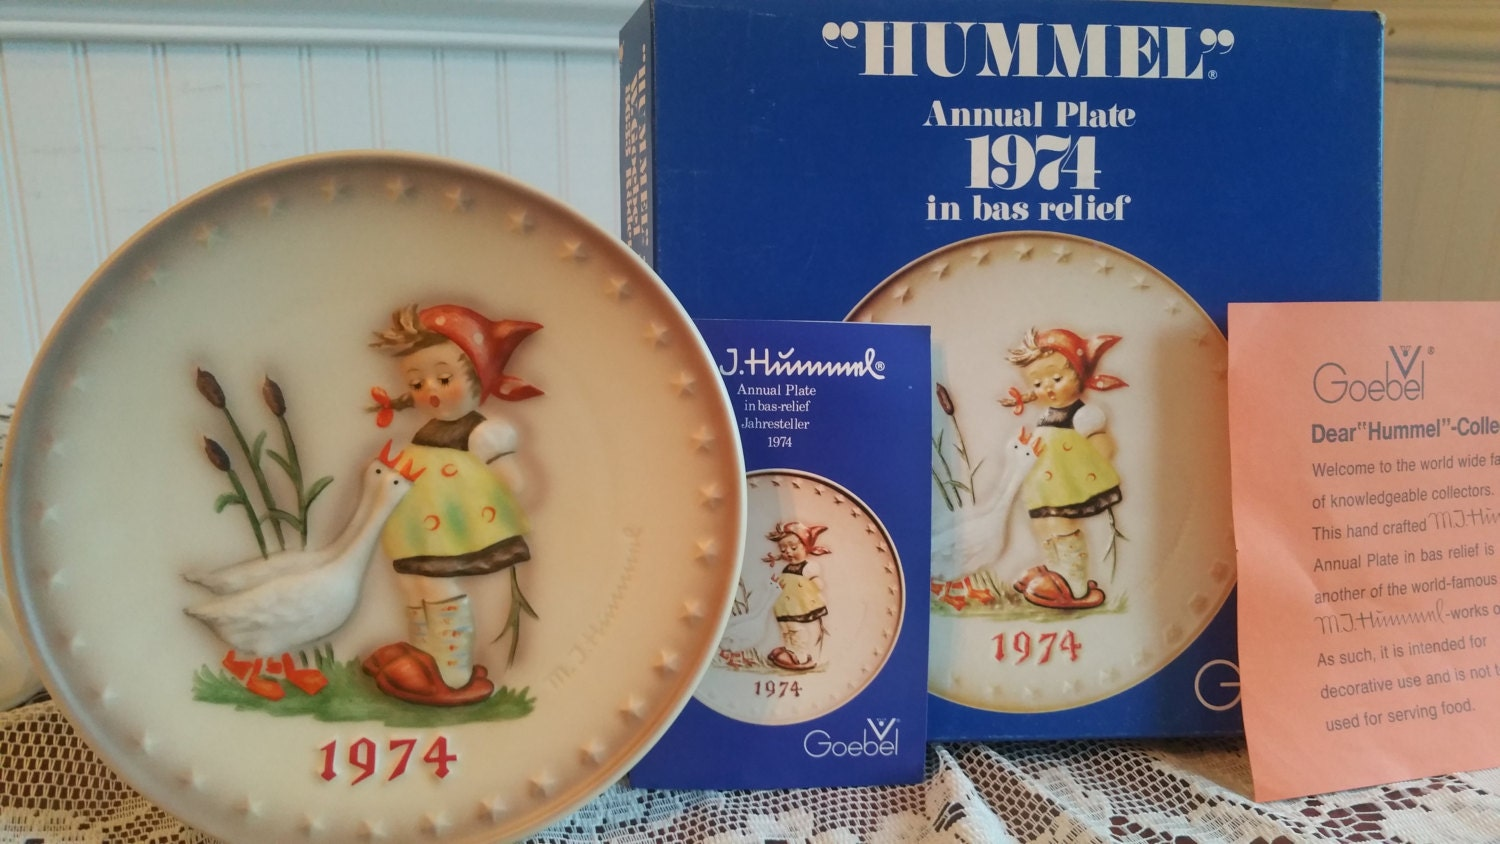 Free us shipping vintage 1974 hummel annual plate goose girl hand painted 7 5 inch goebel hum 267 4th edition